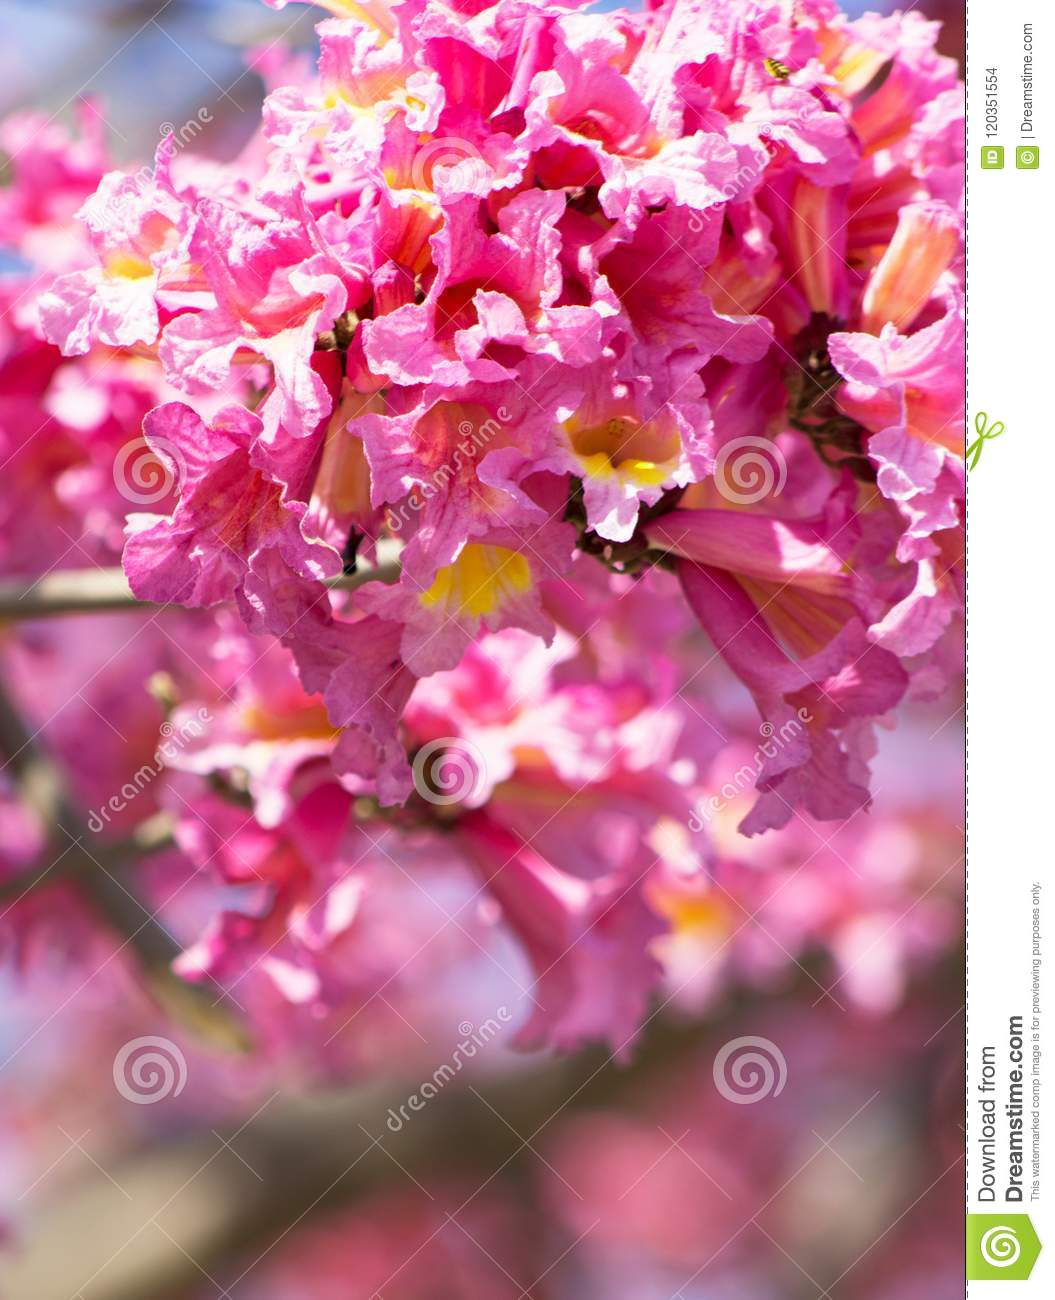 Frilly Pink Trumpet Shaped Flowers From Tabebuia Rosea Tree With